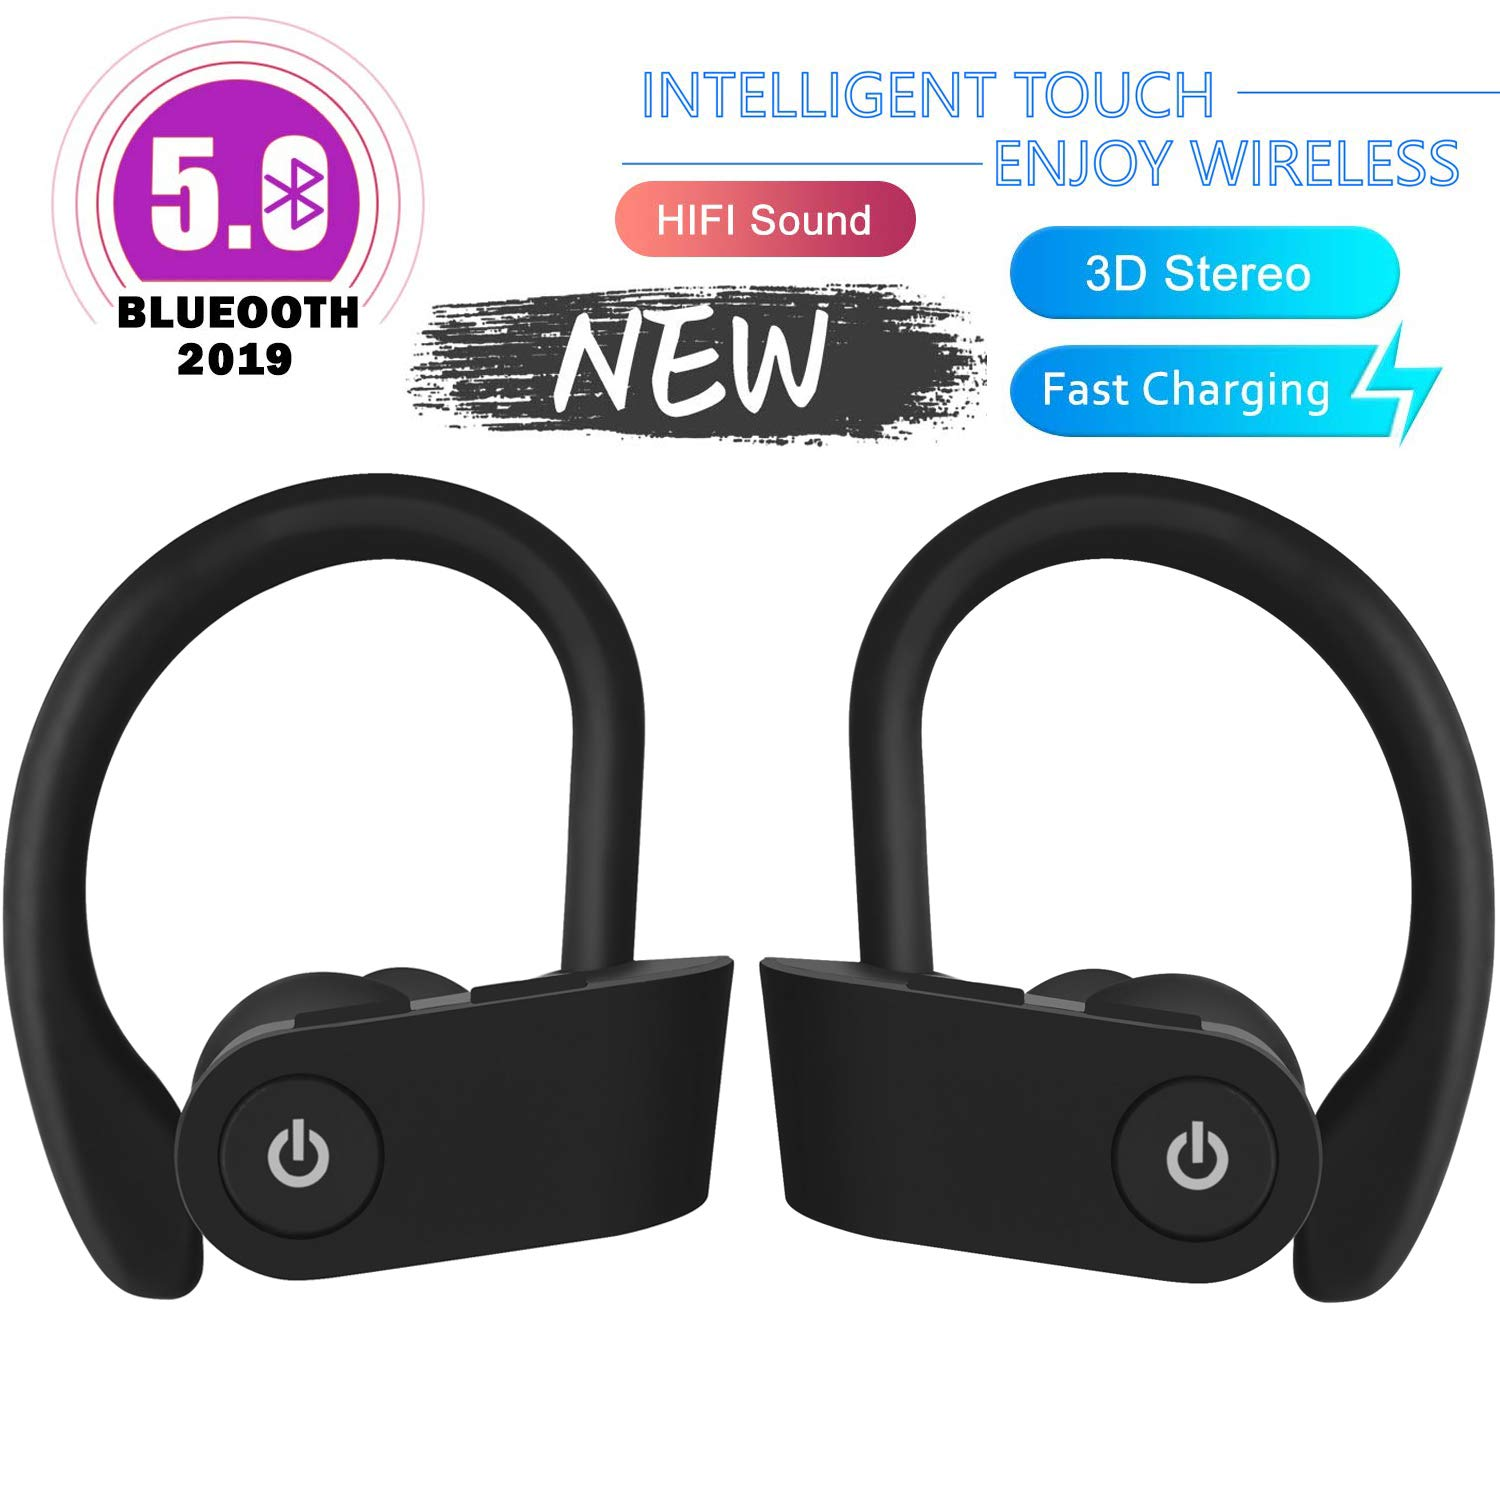 Wireless headphones, Asexy true wireless Bluetooth 5.0 sports headphones, IPX7 waterproof stereo HiFi sound, built-in microphone compatible with Android, iOS, Huawei, Samsung